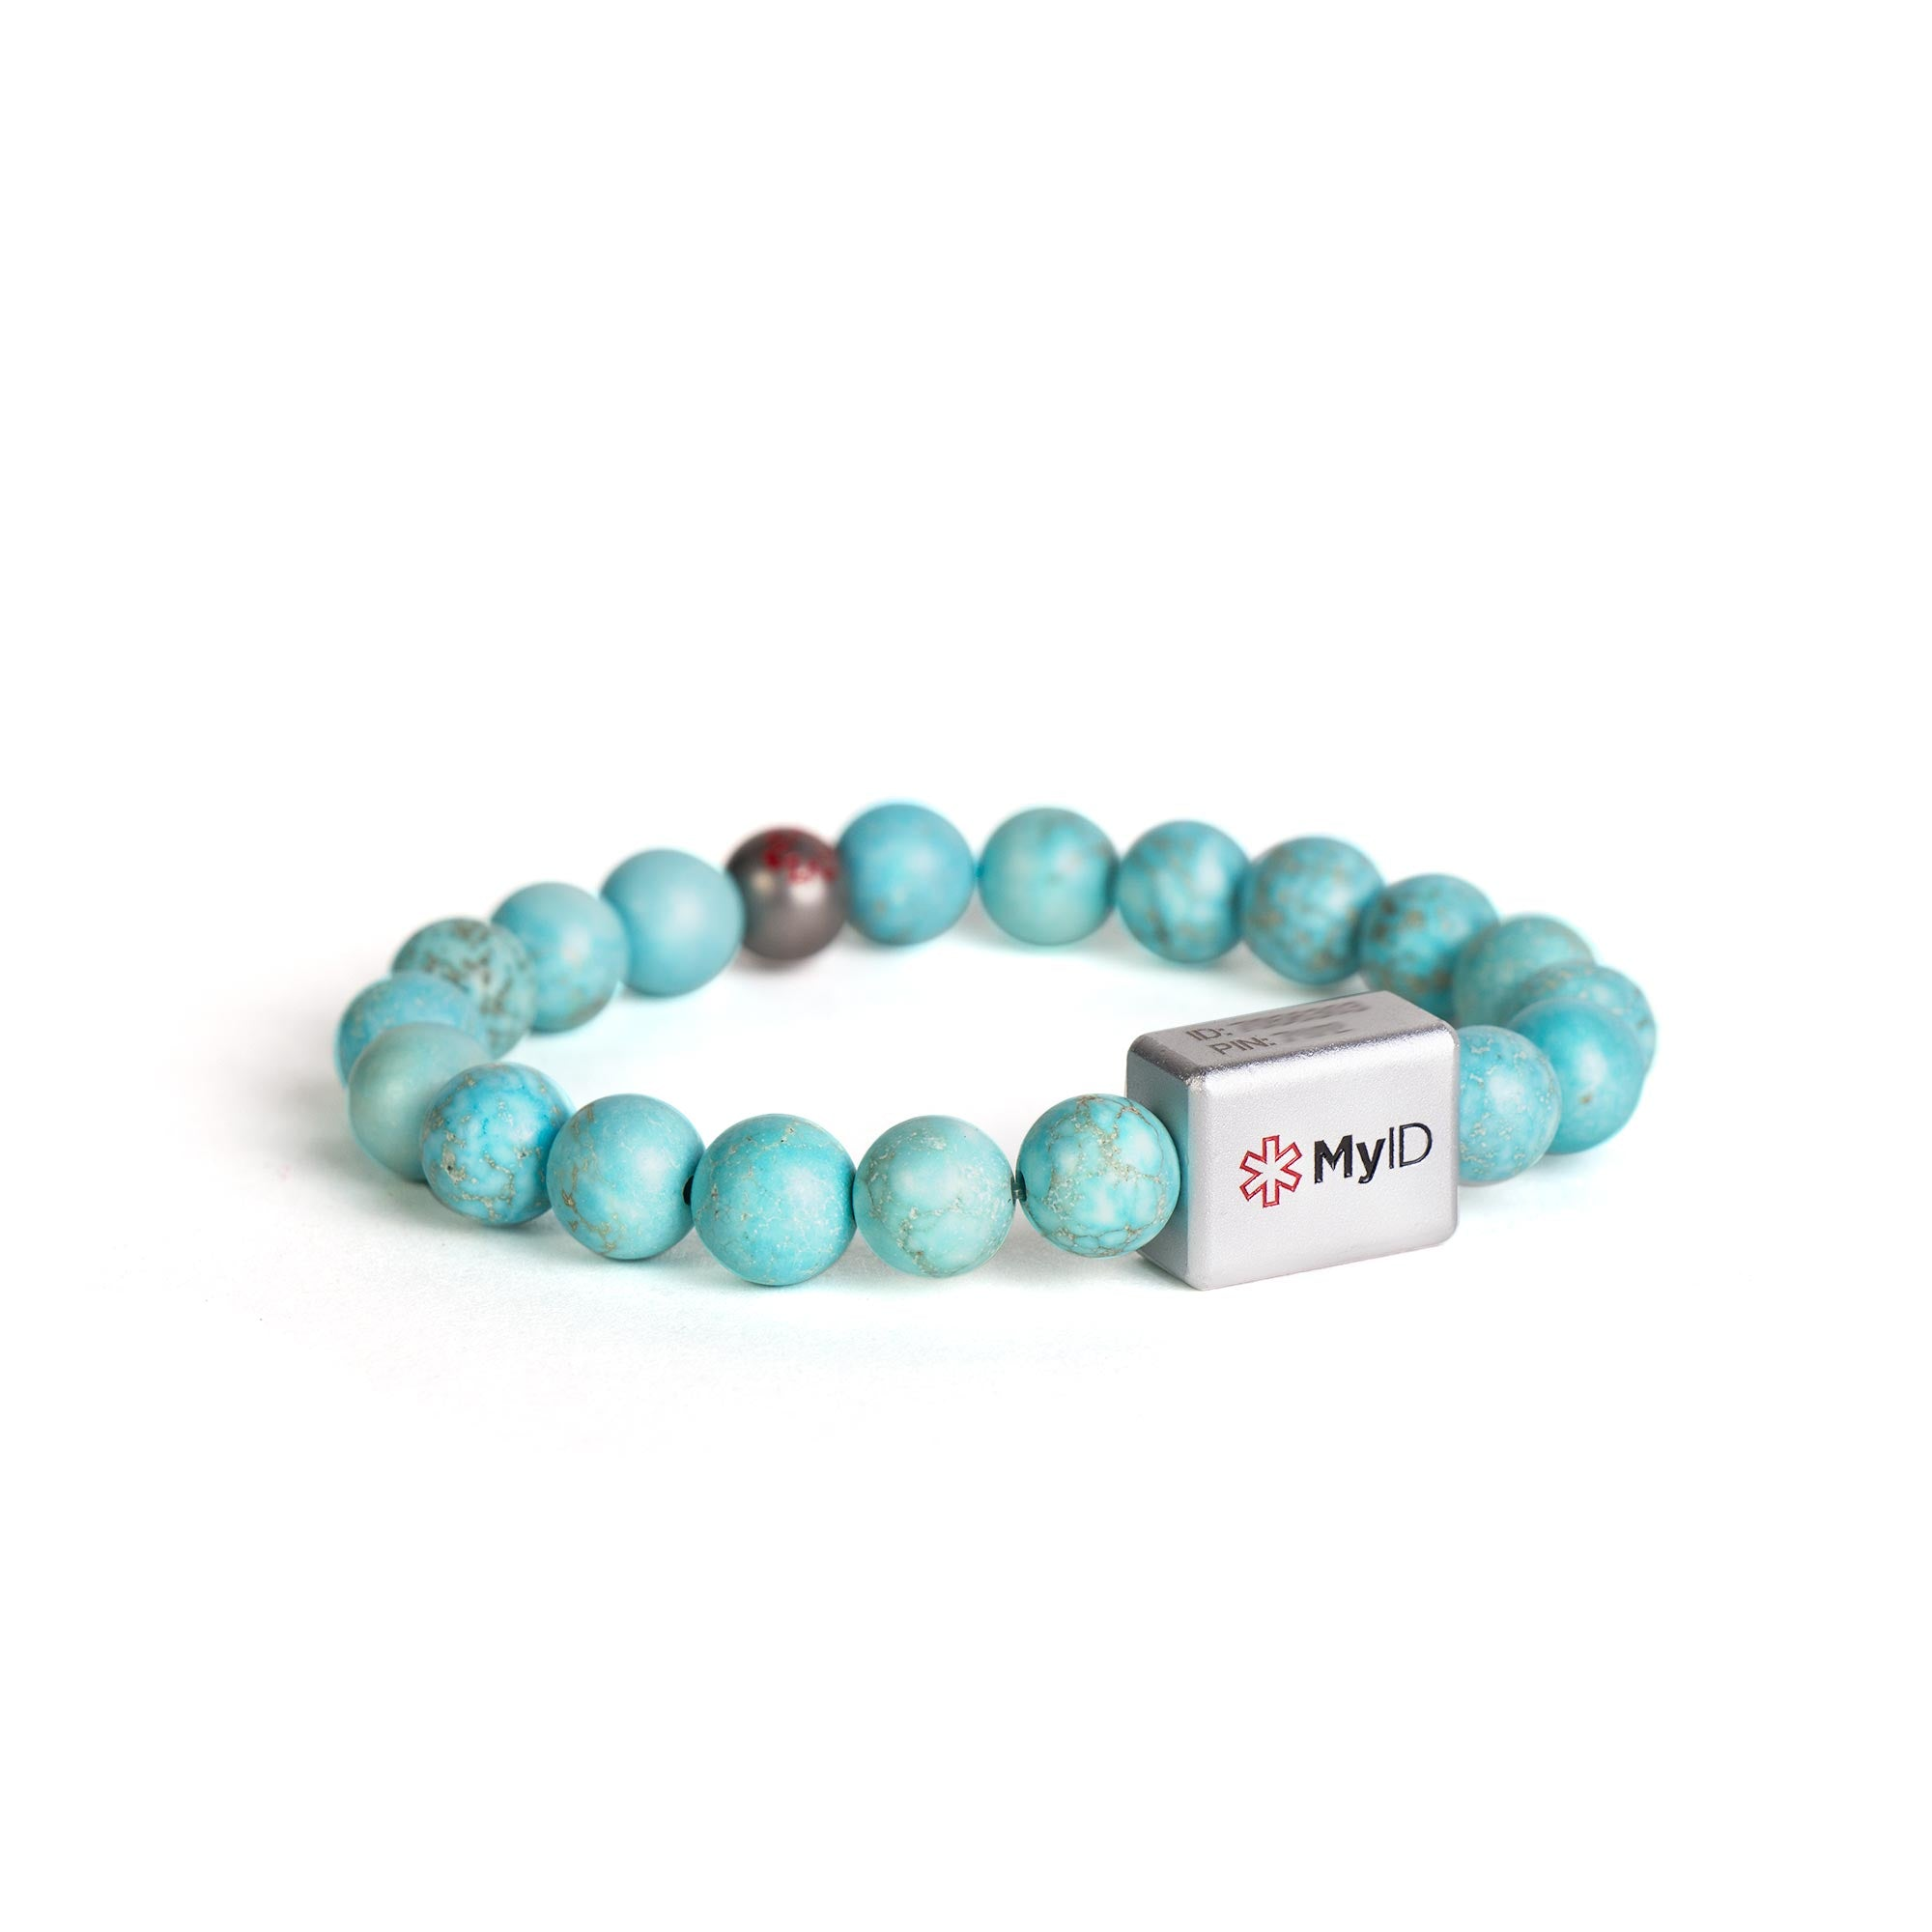 Turquoise Stone Medical ID Bracelet